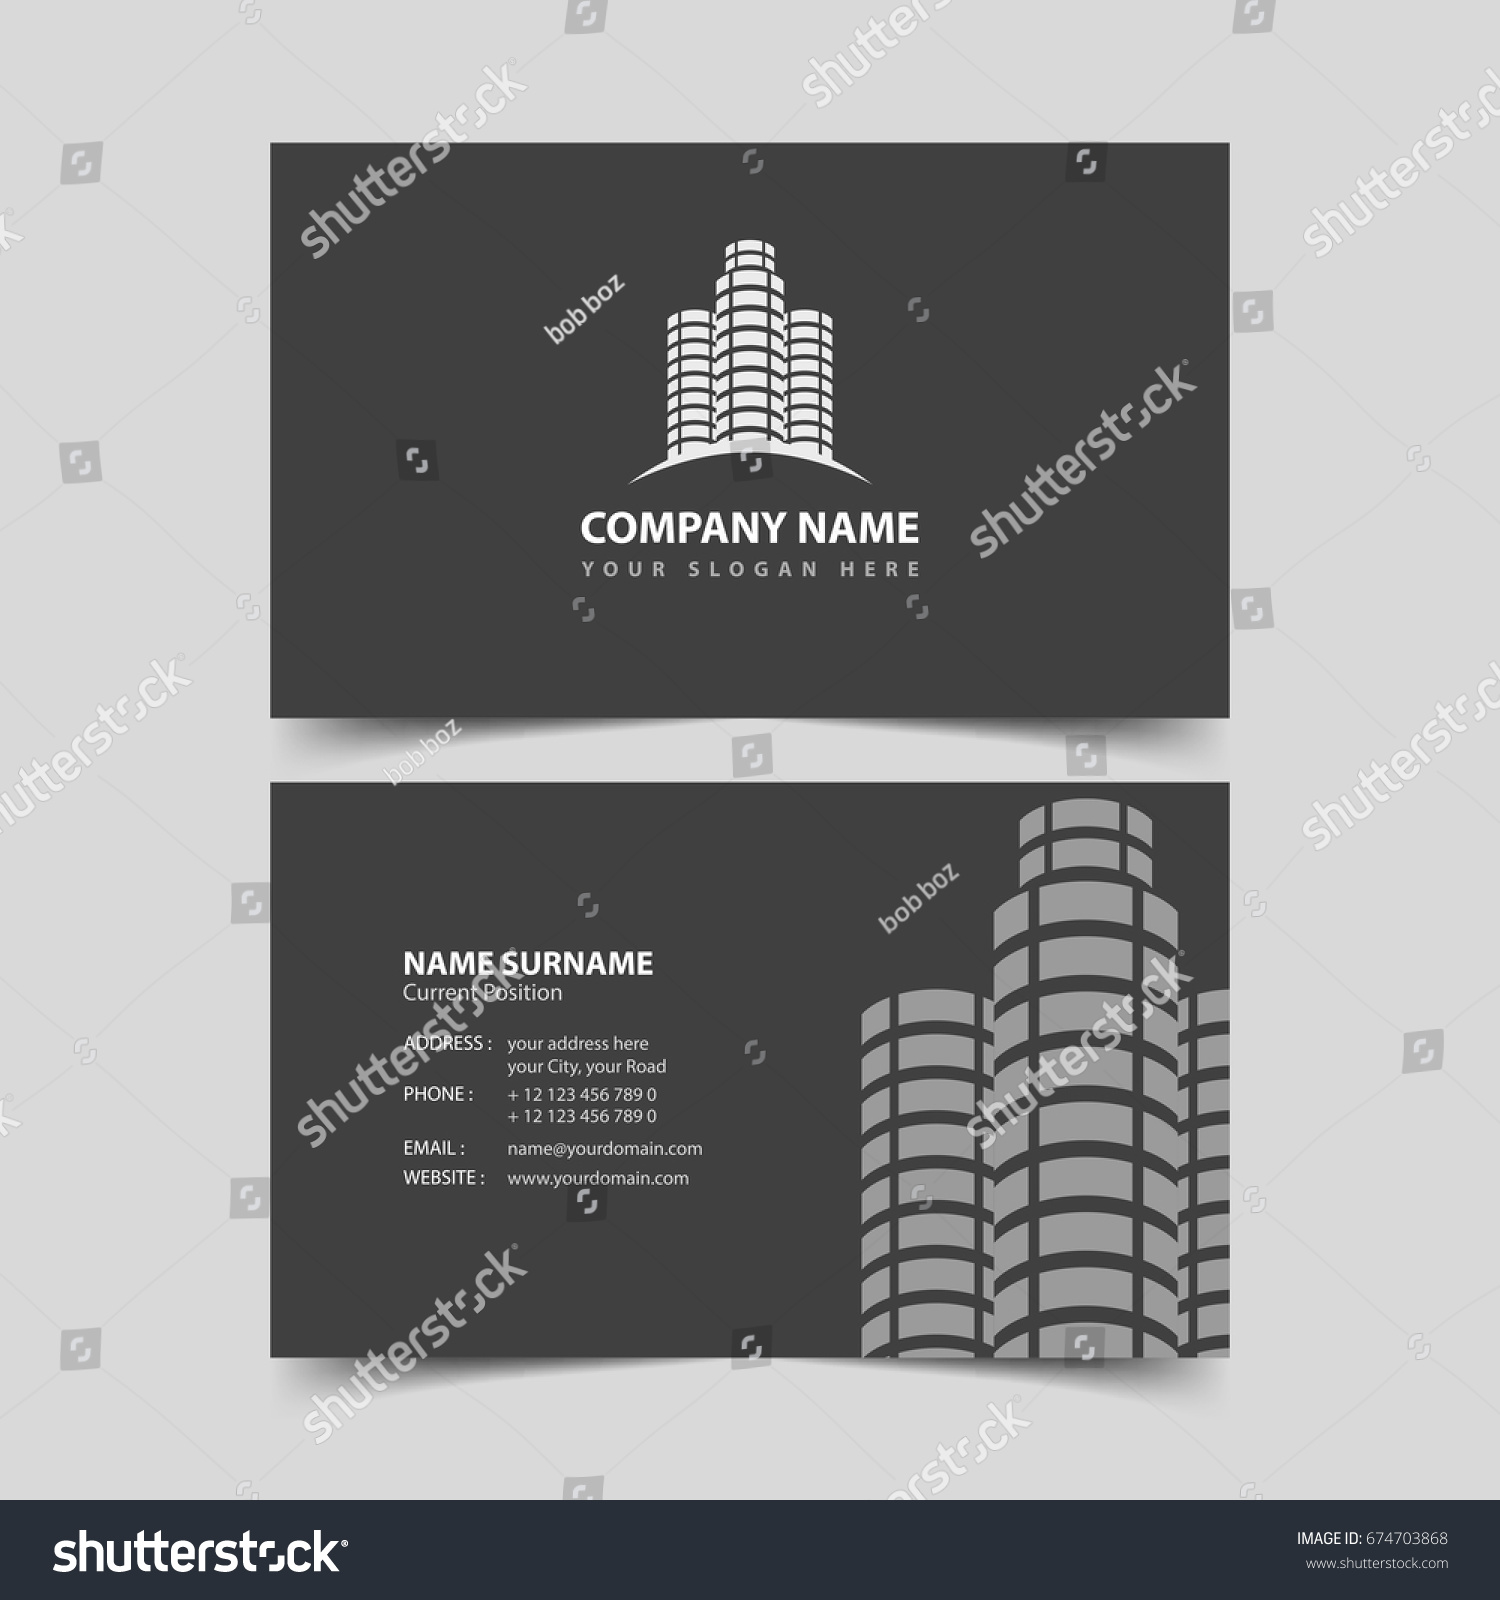 Realtor business card design template stock vector royalty free realtor business card design template accmission Choice Image